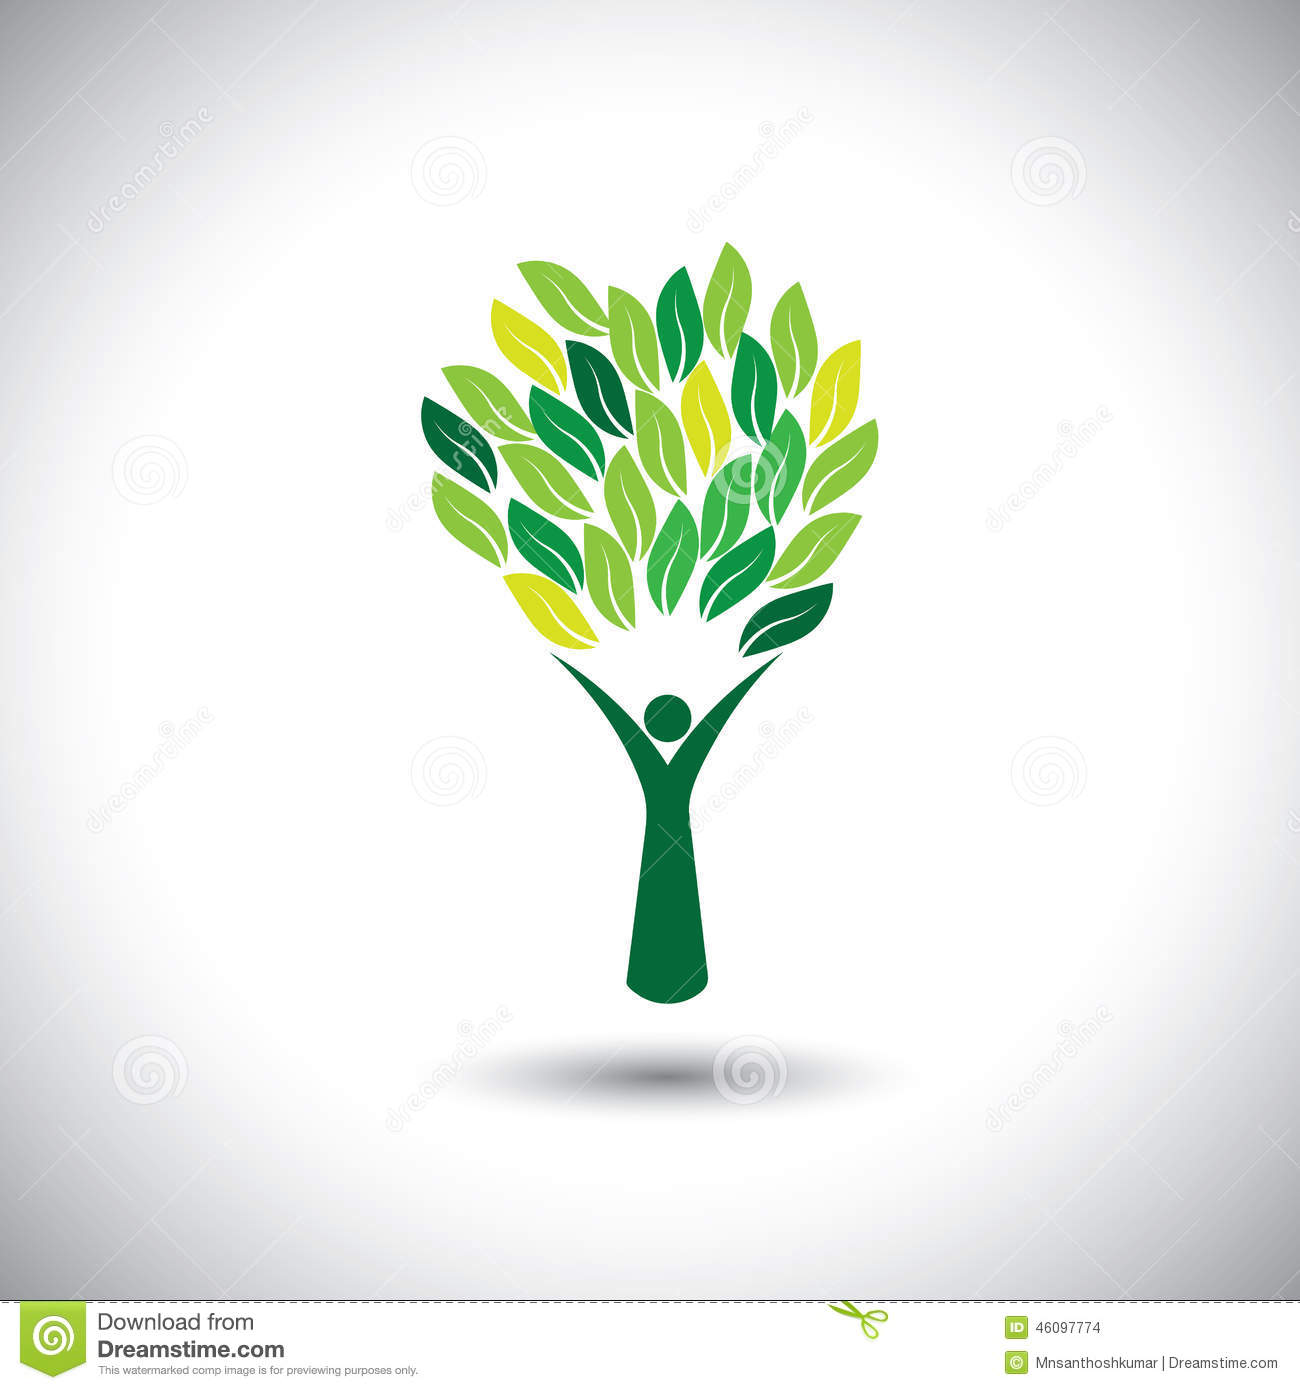 Colorful People Tree - Eco Lifestyle Concept Vector. Stock Vector ...